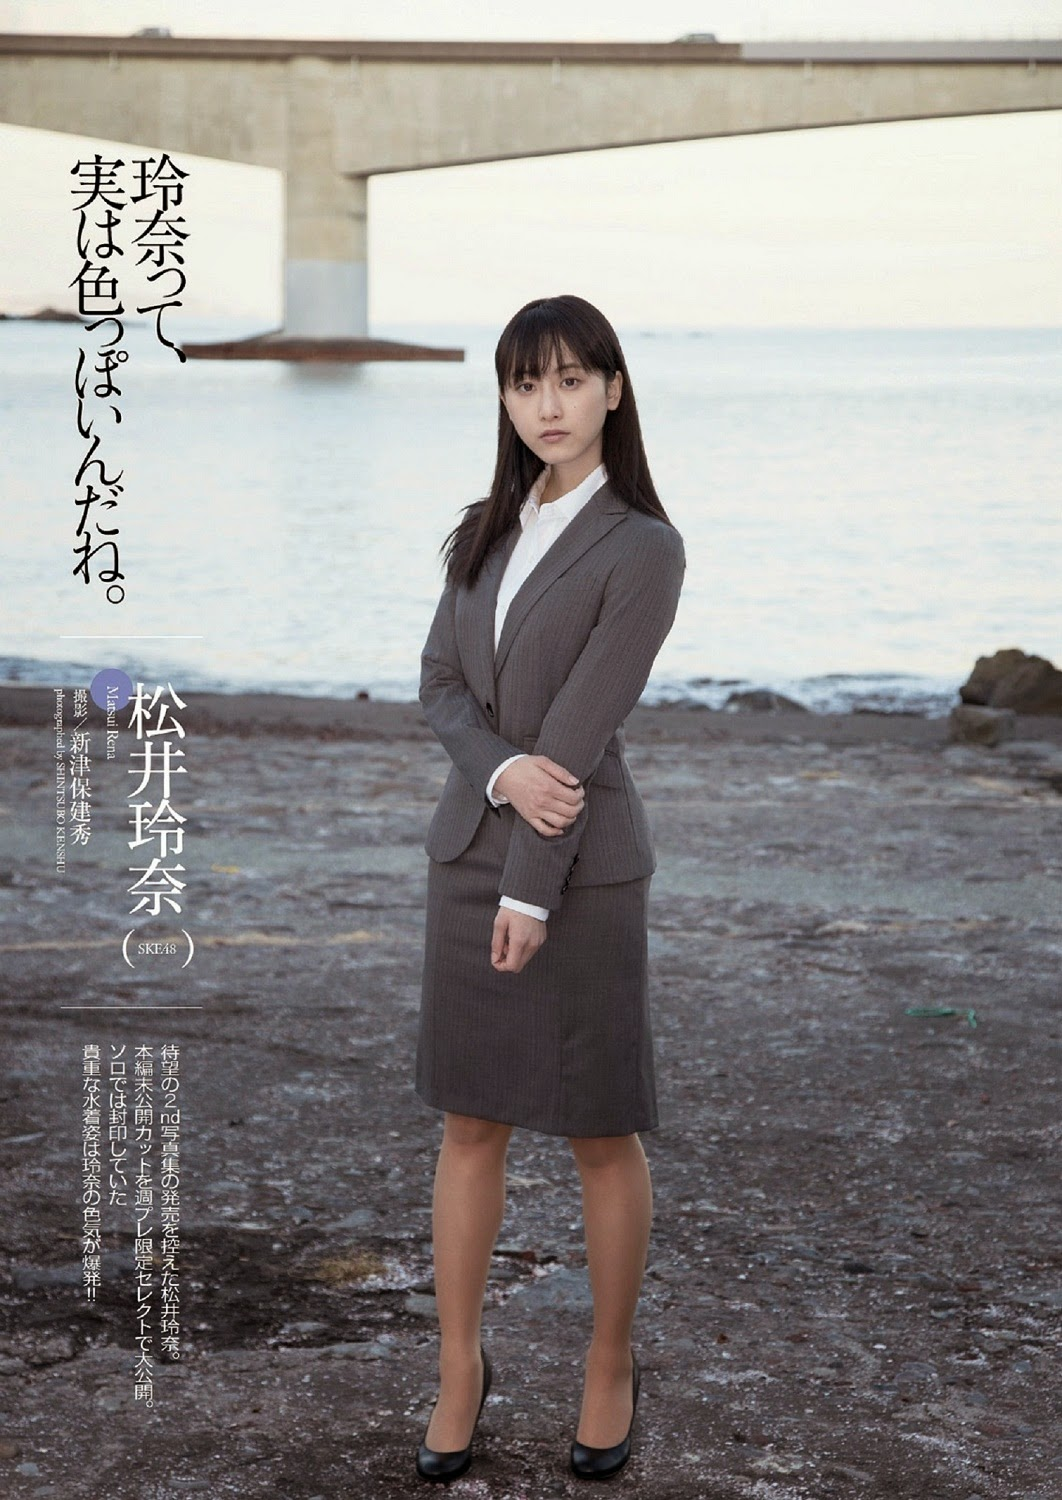 Matsui Rena 松井玲奈 Weekly Playboy April 2014 Photos